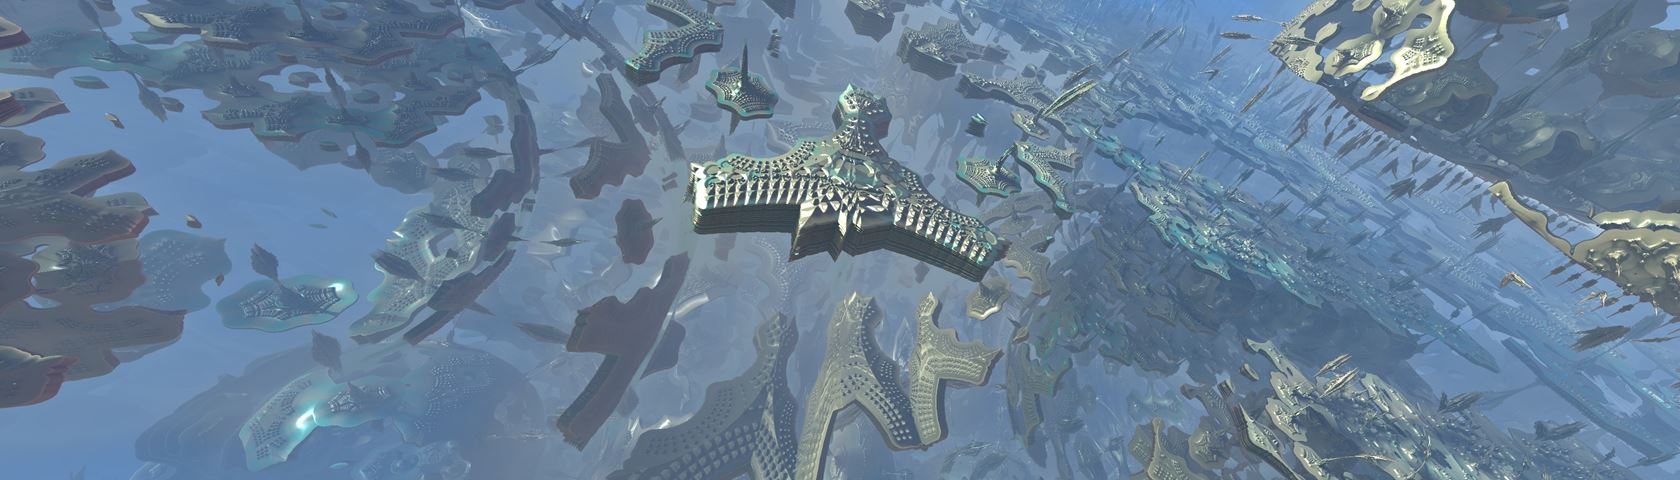 Encounters in the Fractal Expanse